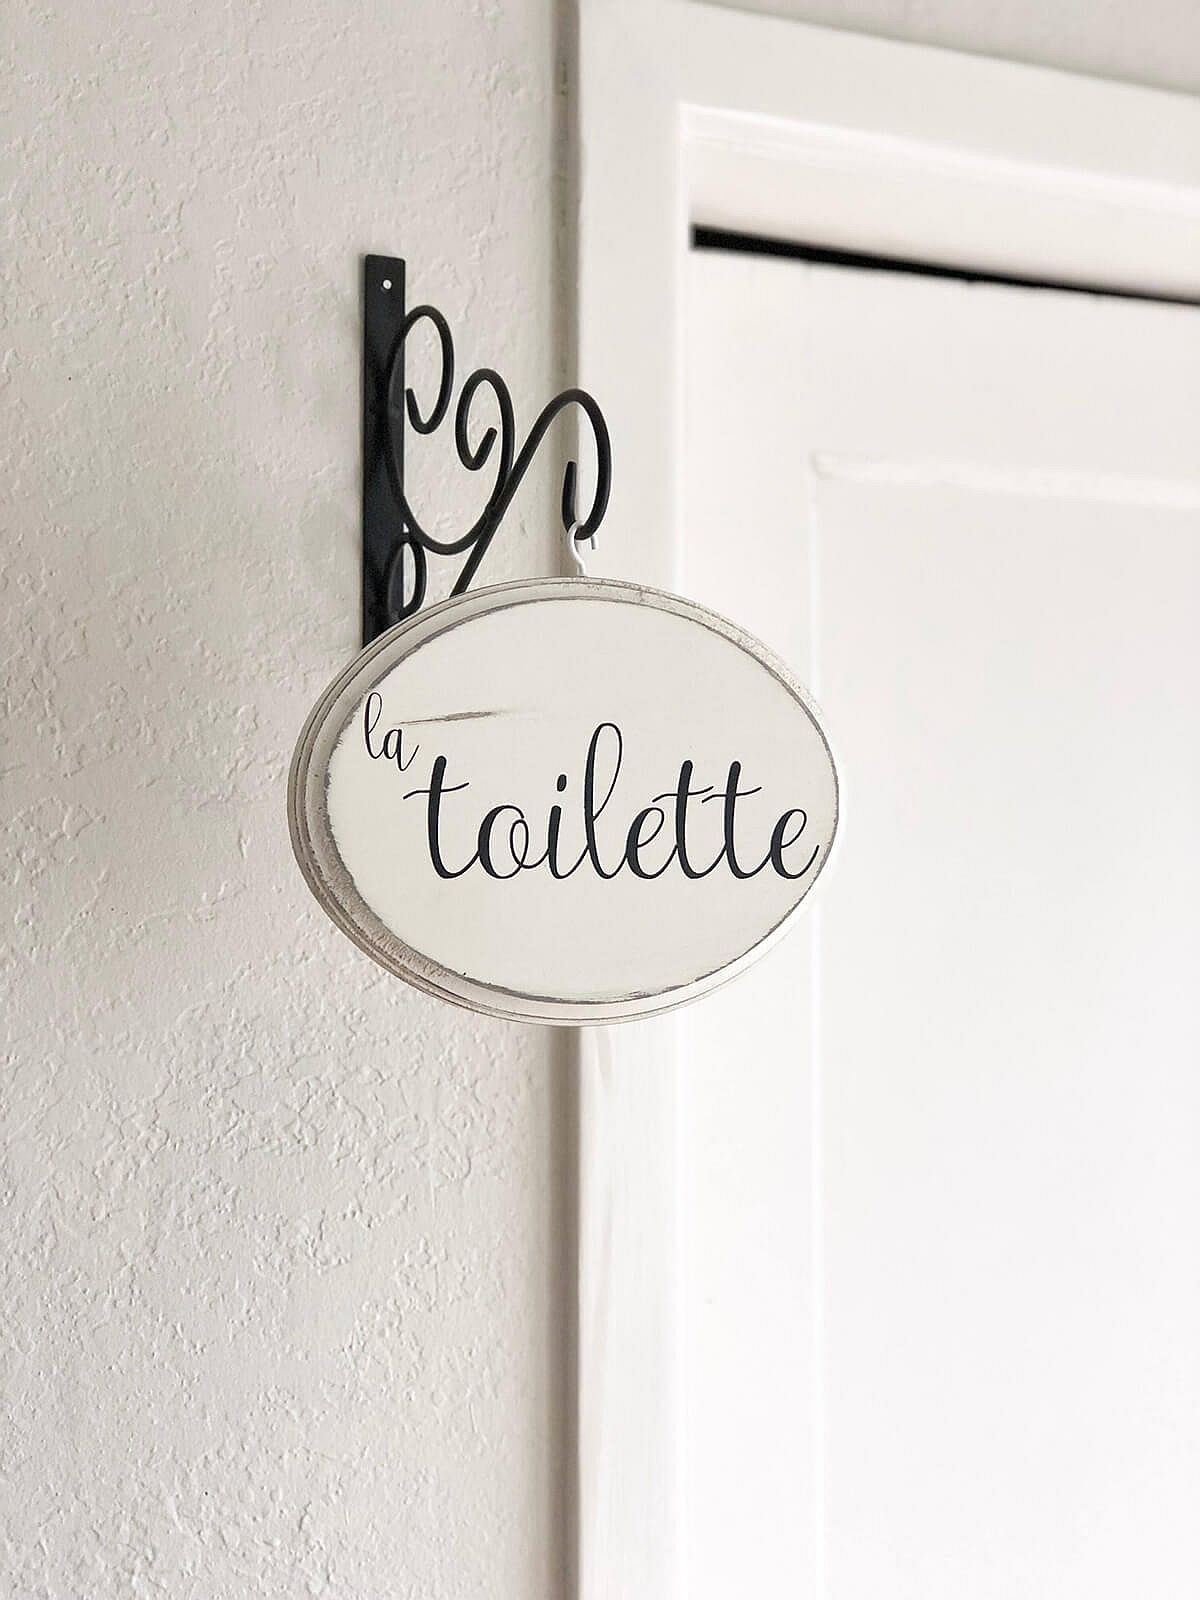 Add a bit of French panache to the bathroom with a custom sign!